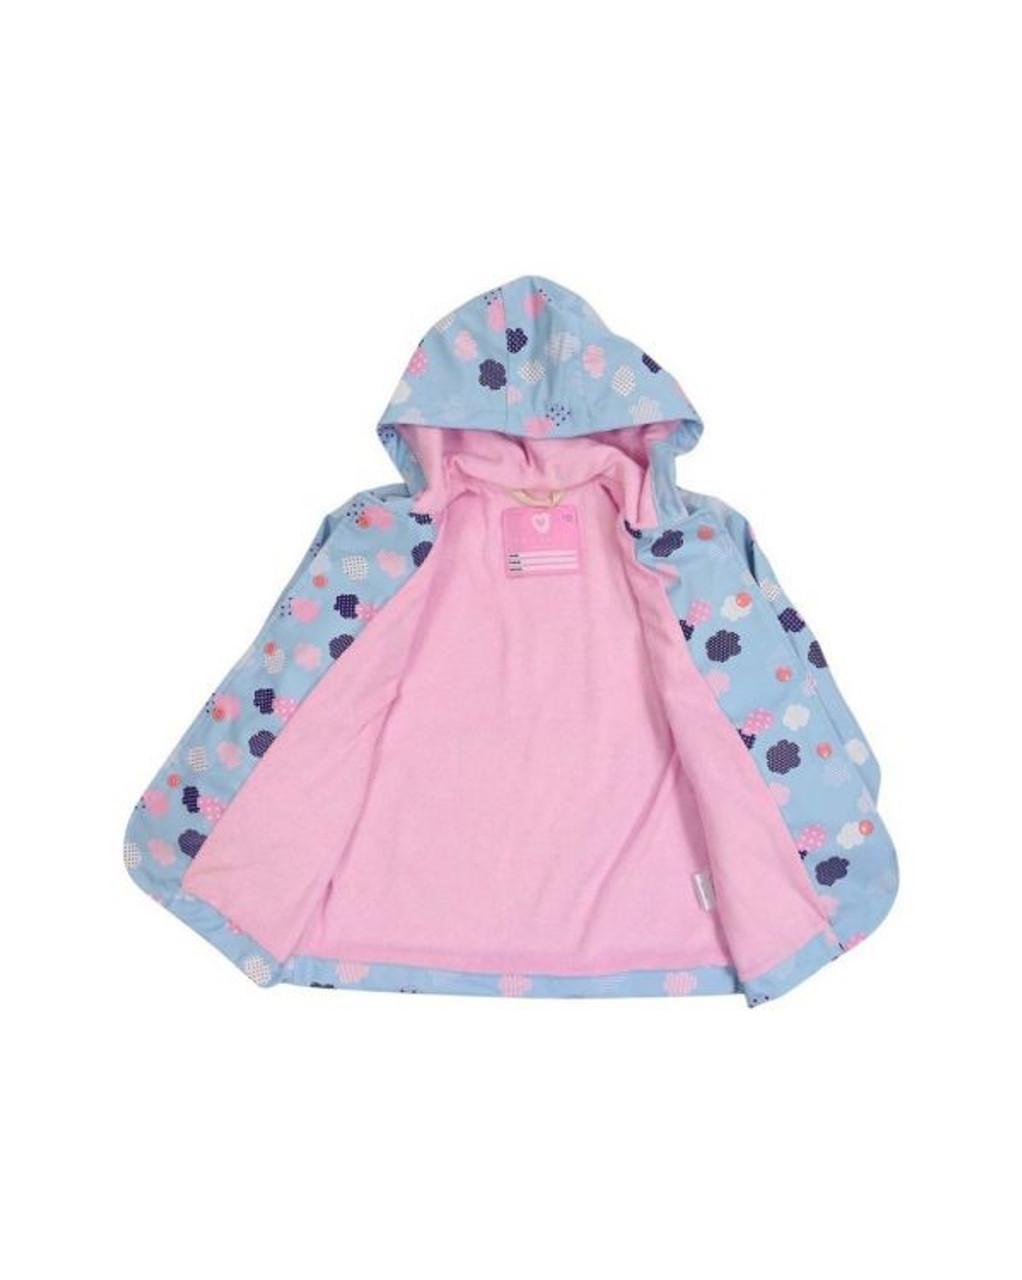 Korango Raincoat 4 Years at Baby Barn Discounts Beautifully designed, bright & fun raincoat from Korango. Perfect for rainy cold days. Waterproof on the outside with soft terry towelling lining for comfort.